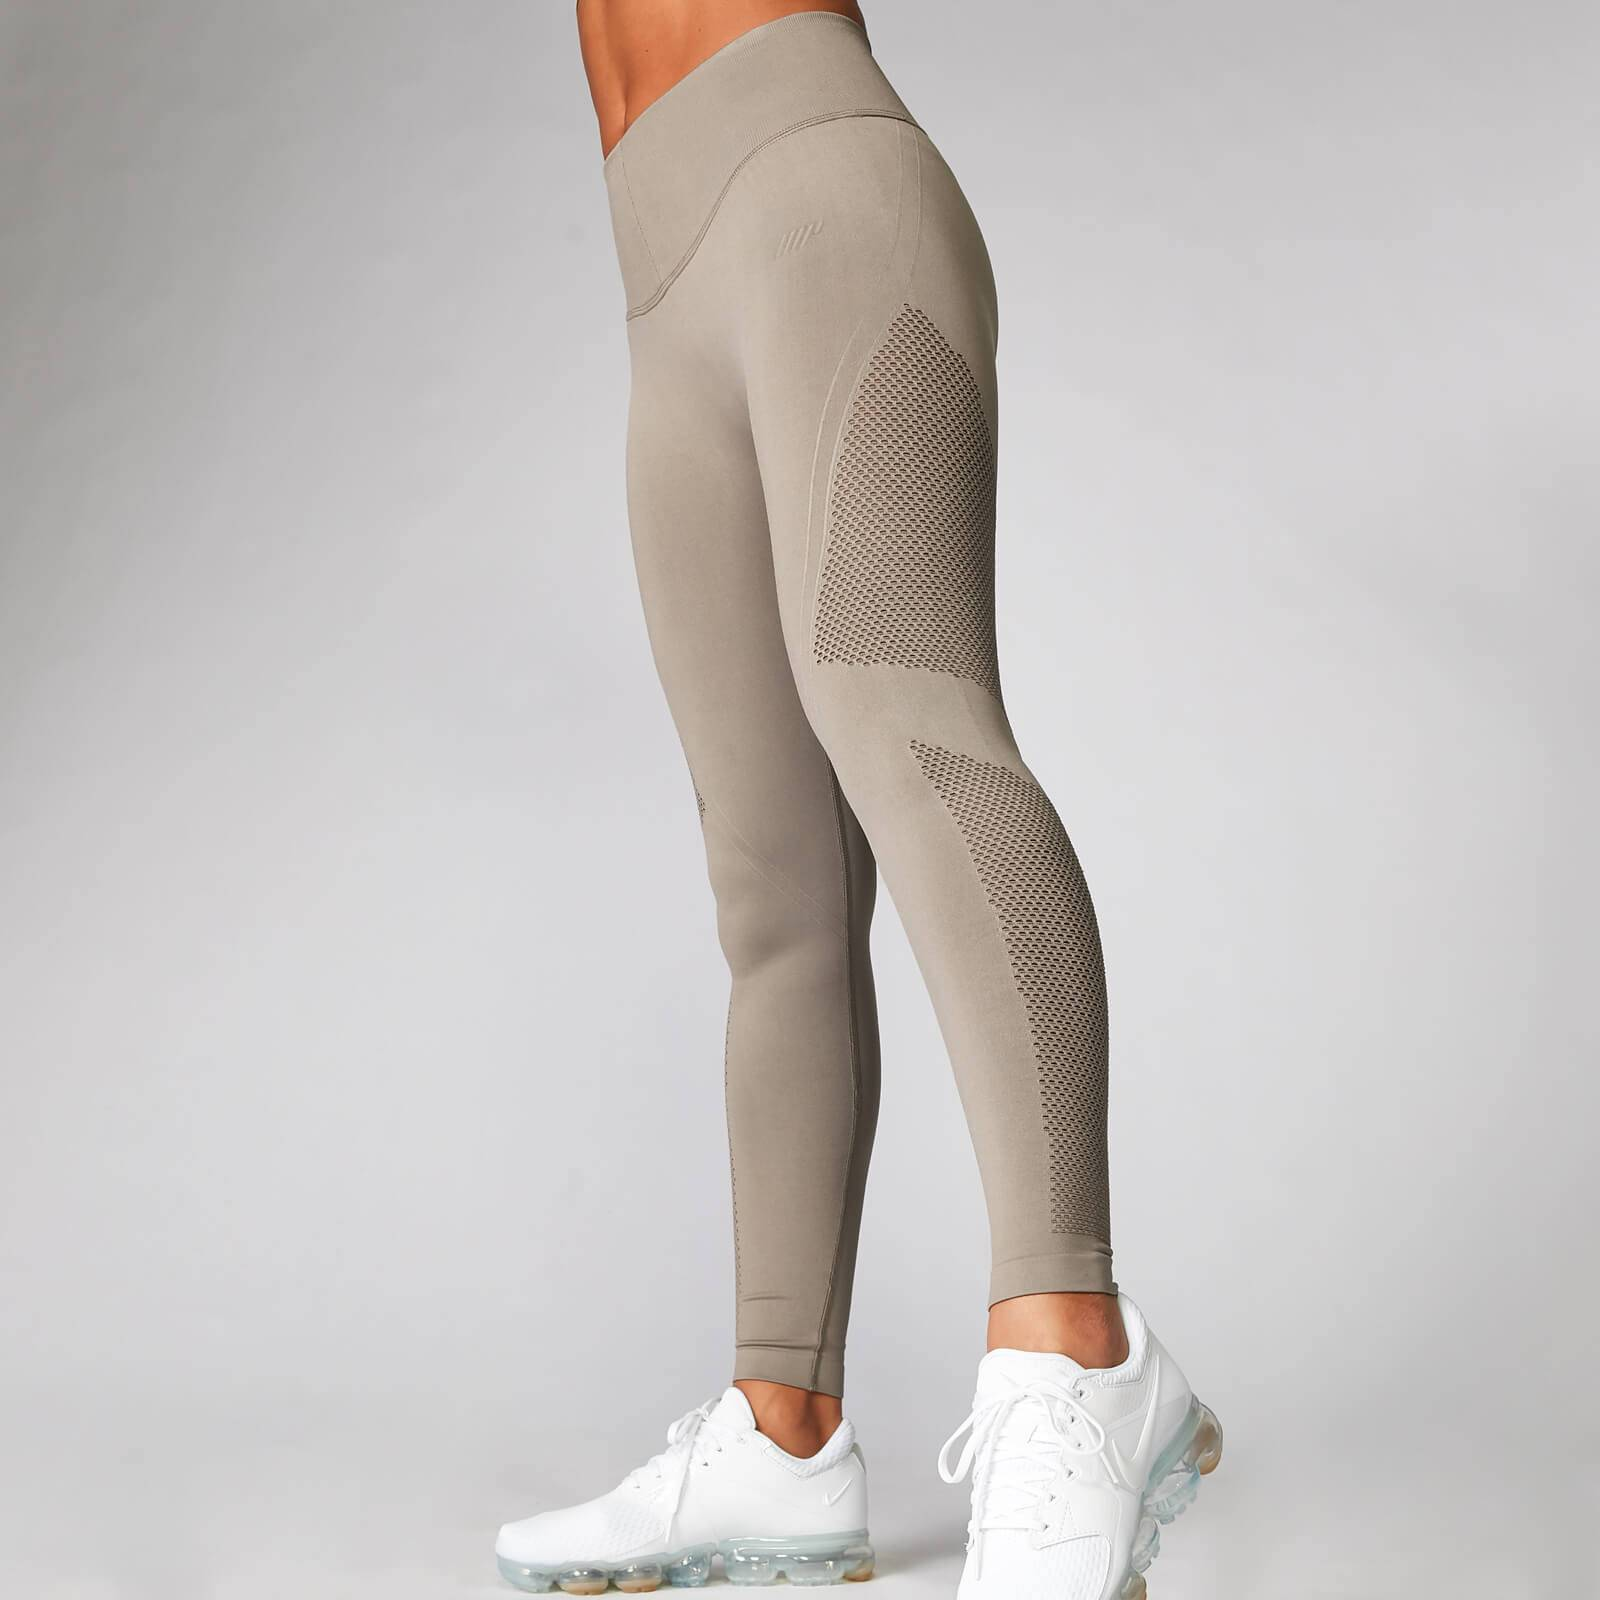 Myprotein Shape Seamless Leggings - Taupe - S